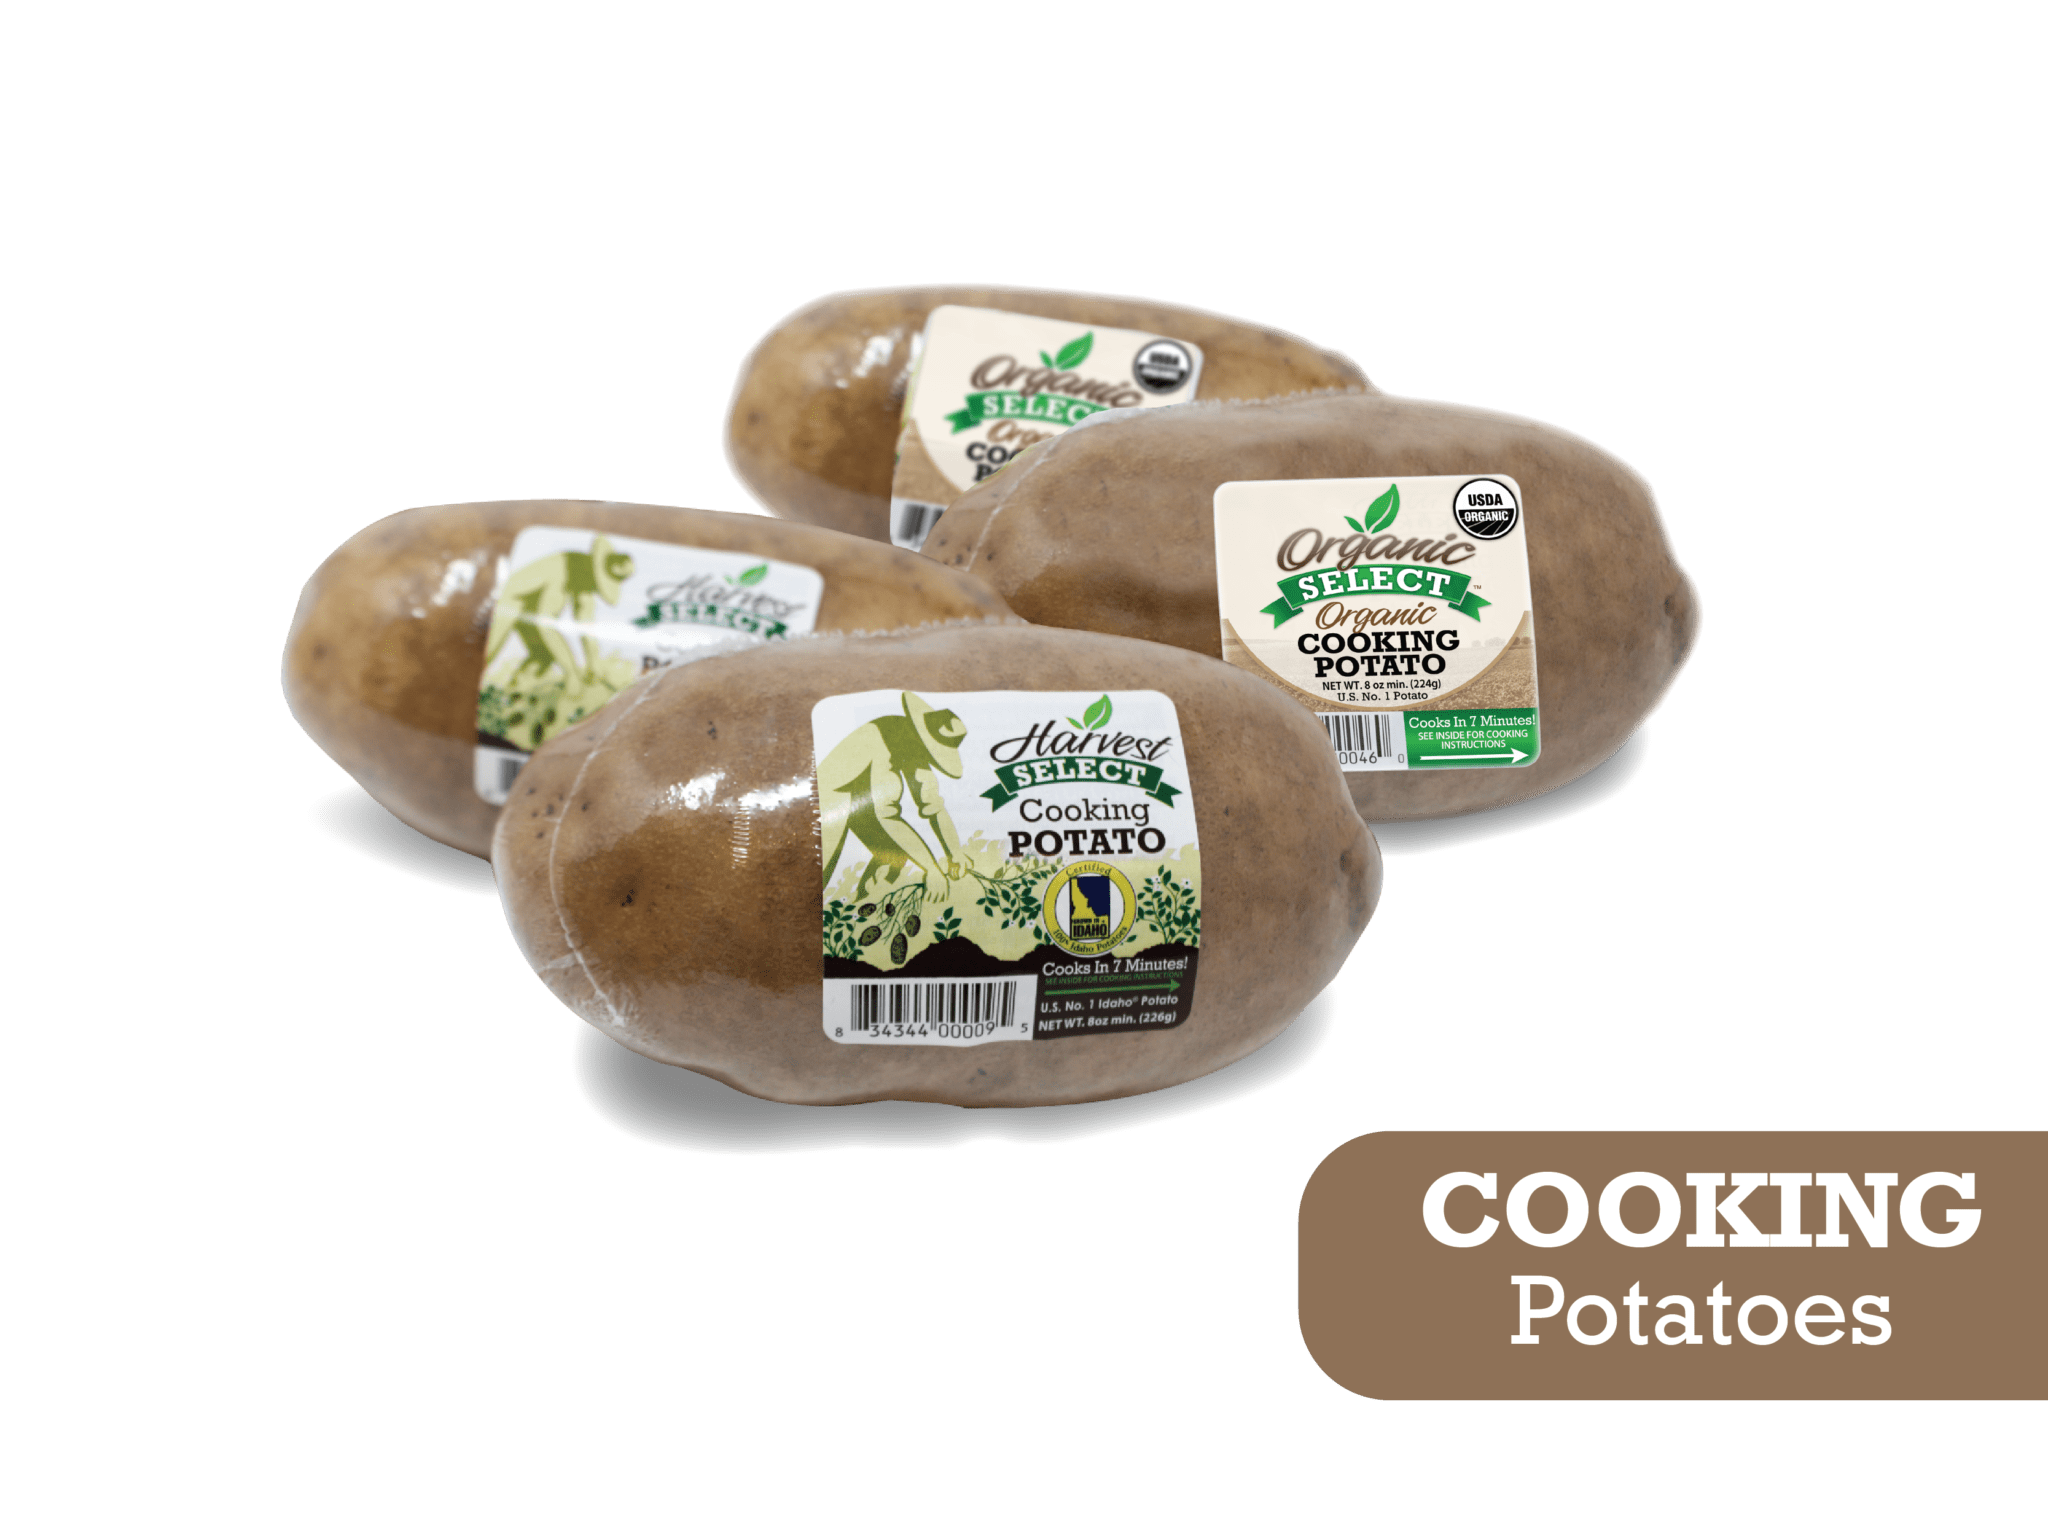 Eagle Eye Produce Organic Select Cooking Potatoes